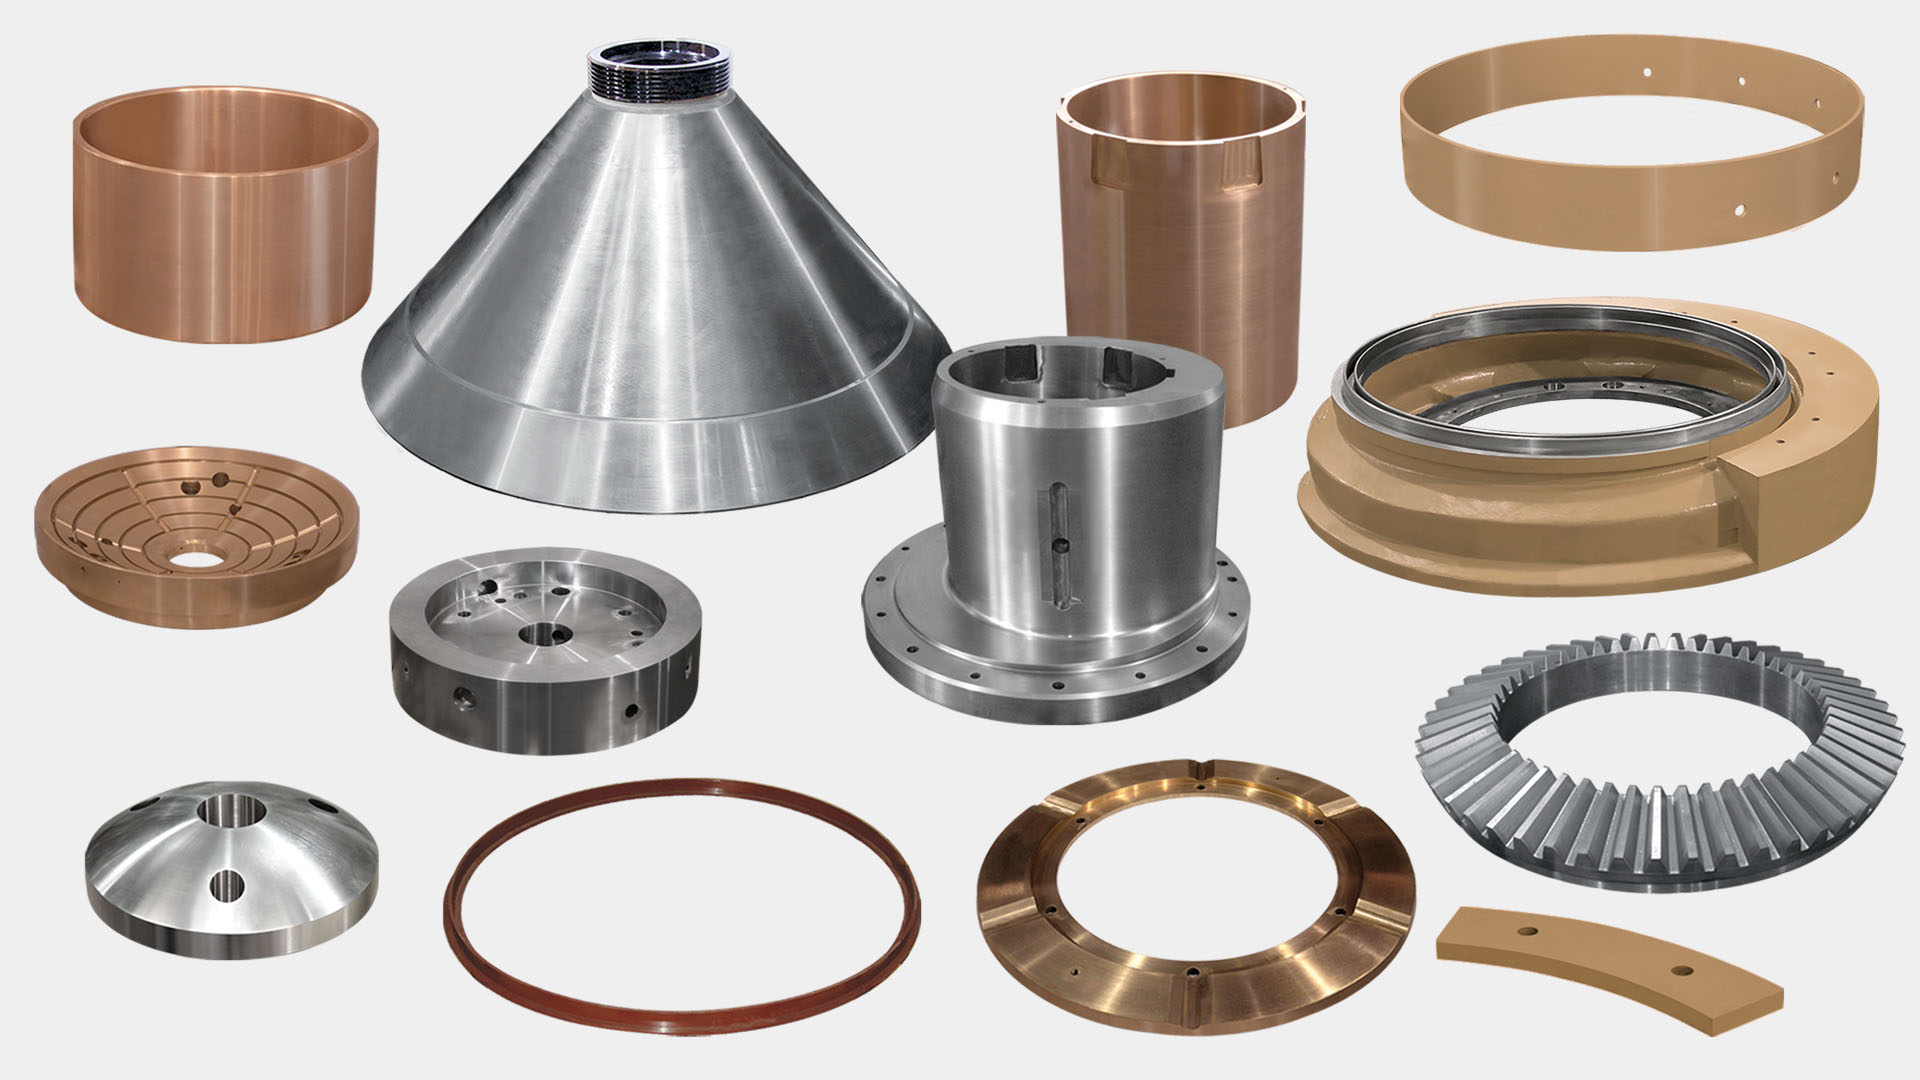 cone crusher parts for Omnicone Metso Outotec rock crushers